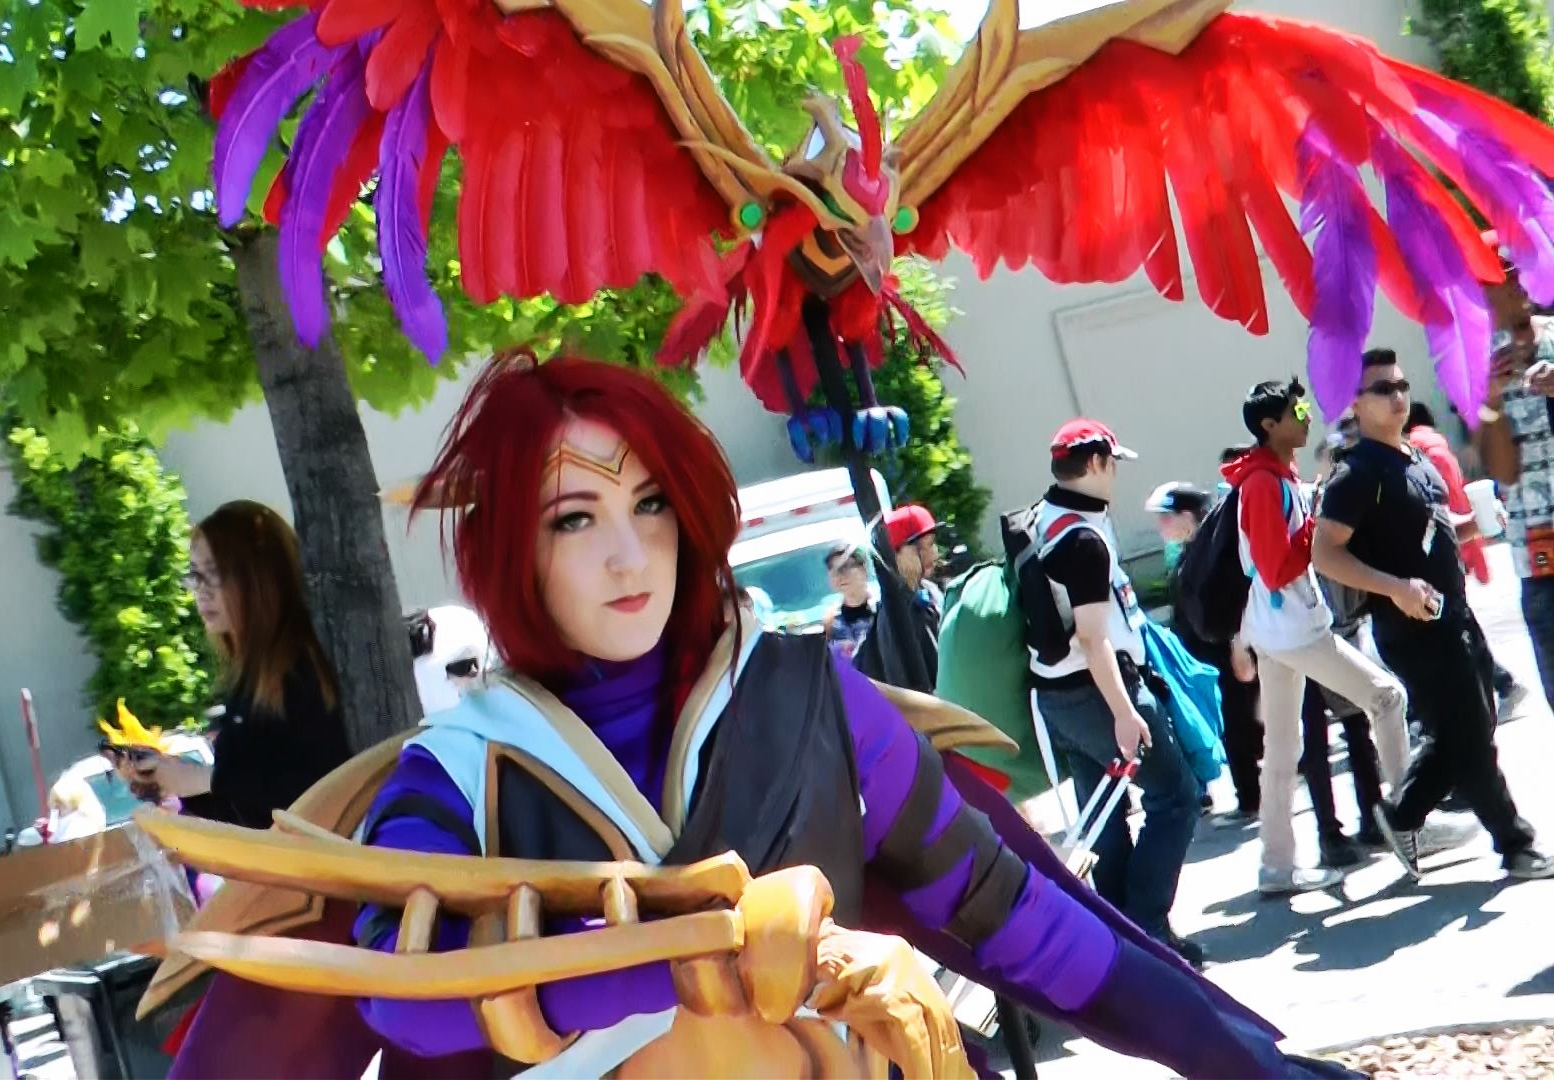 Loved her eagle, she said it took longer than the rest of her costume combined. Quinn's also a champion from League of Legends.